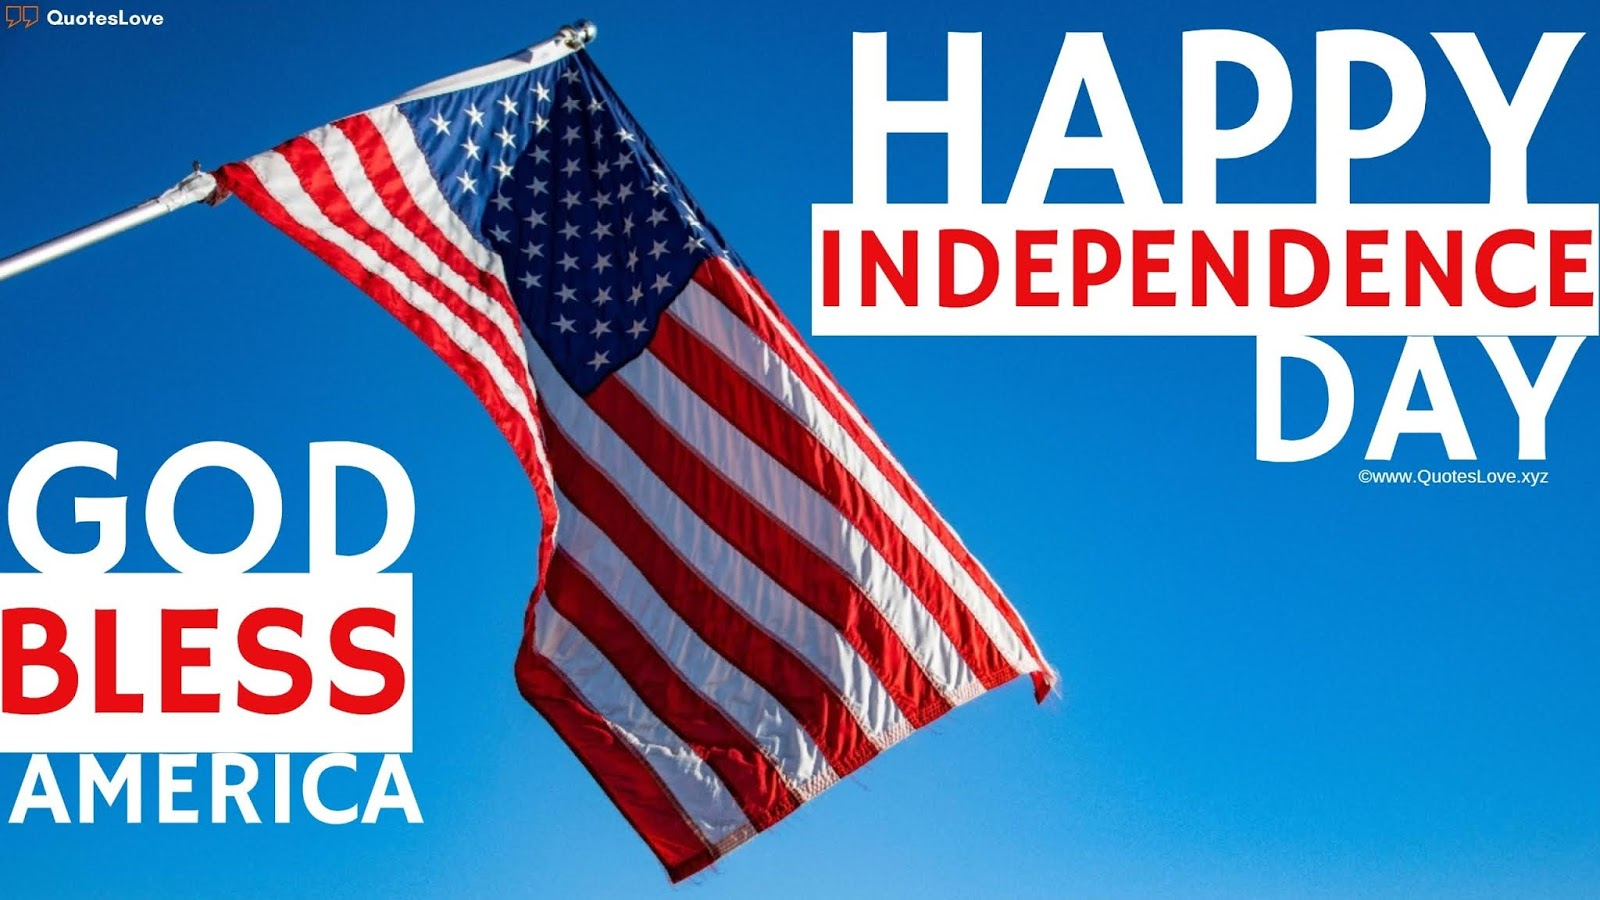 [United States] Independence Day Quotes, Wishes, Messages, Greetings, Sayings, Images, Pictures, Poster, Wallpaper